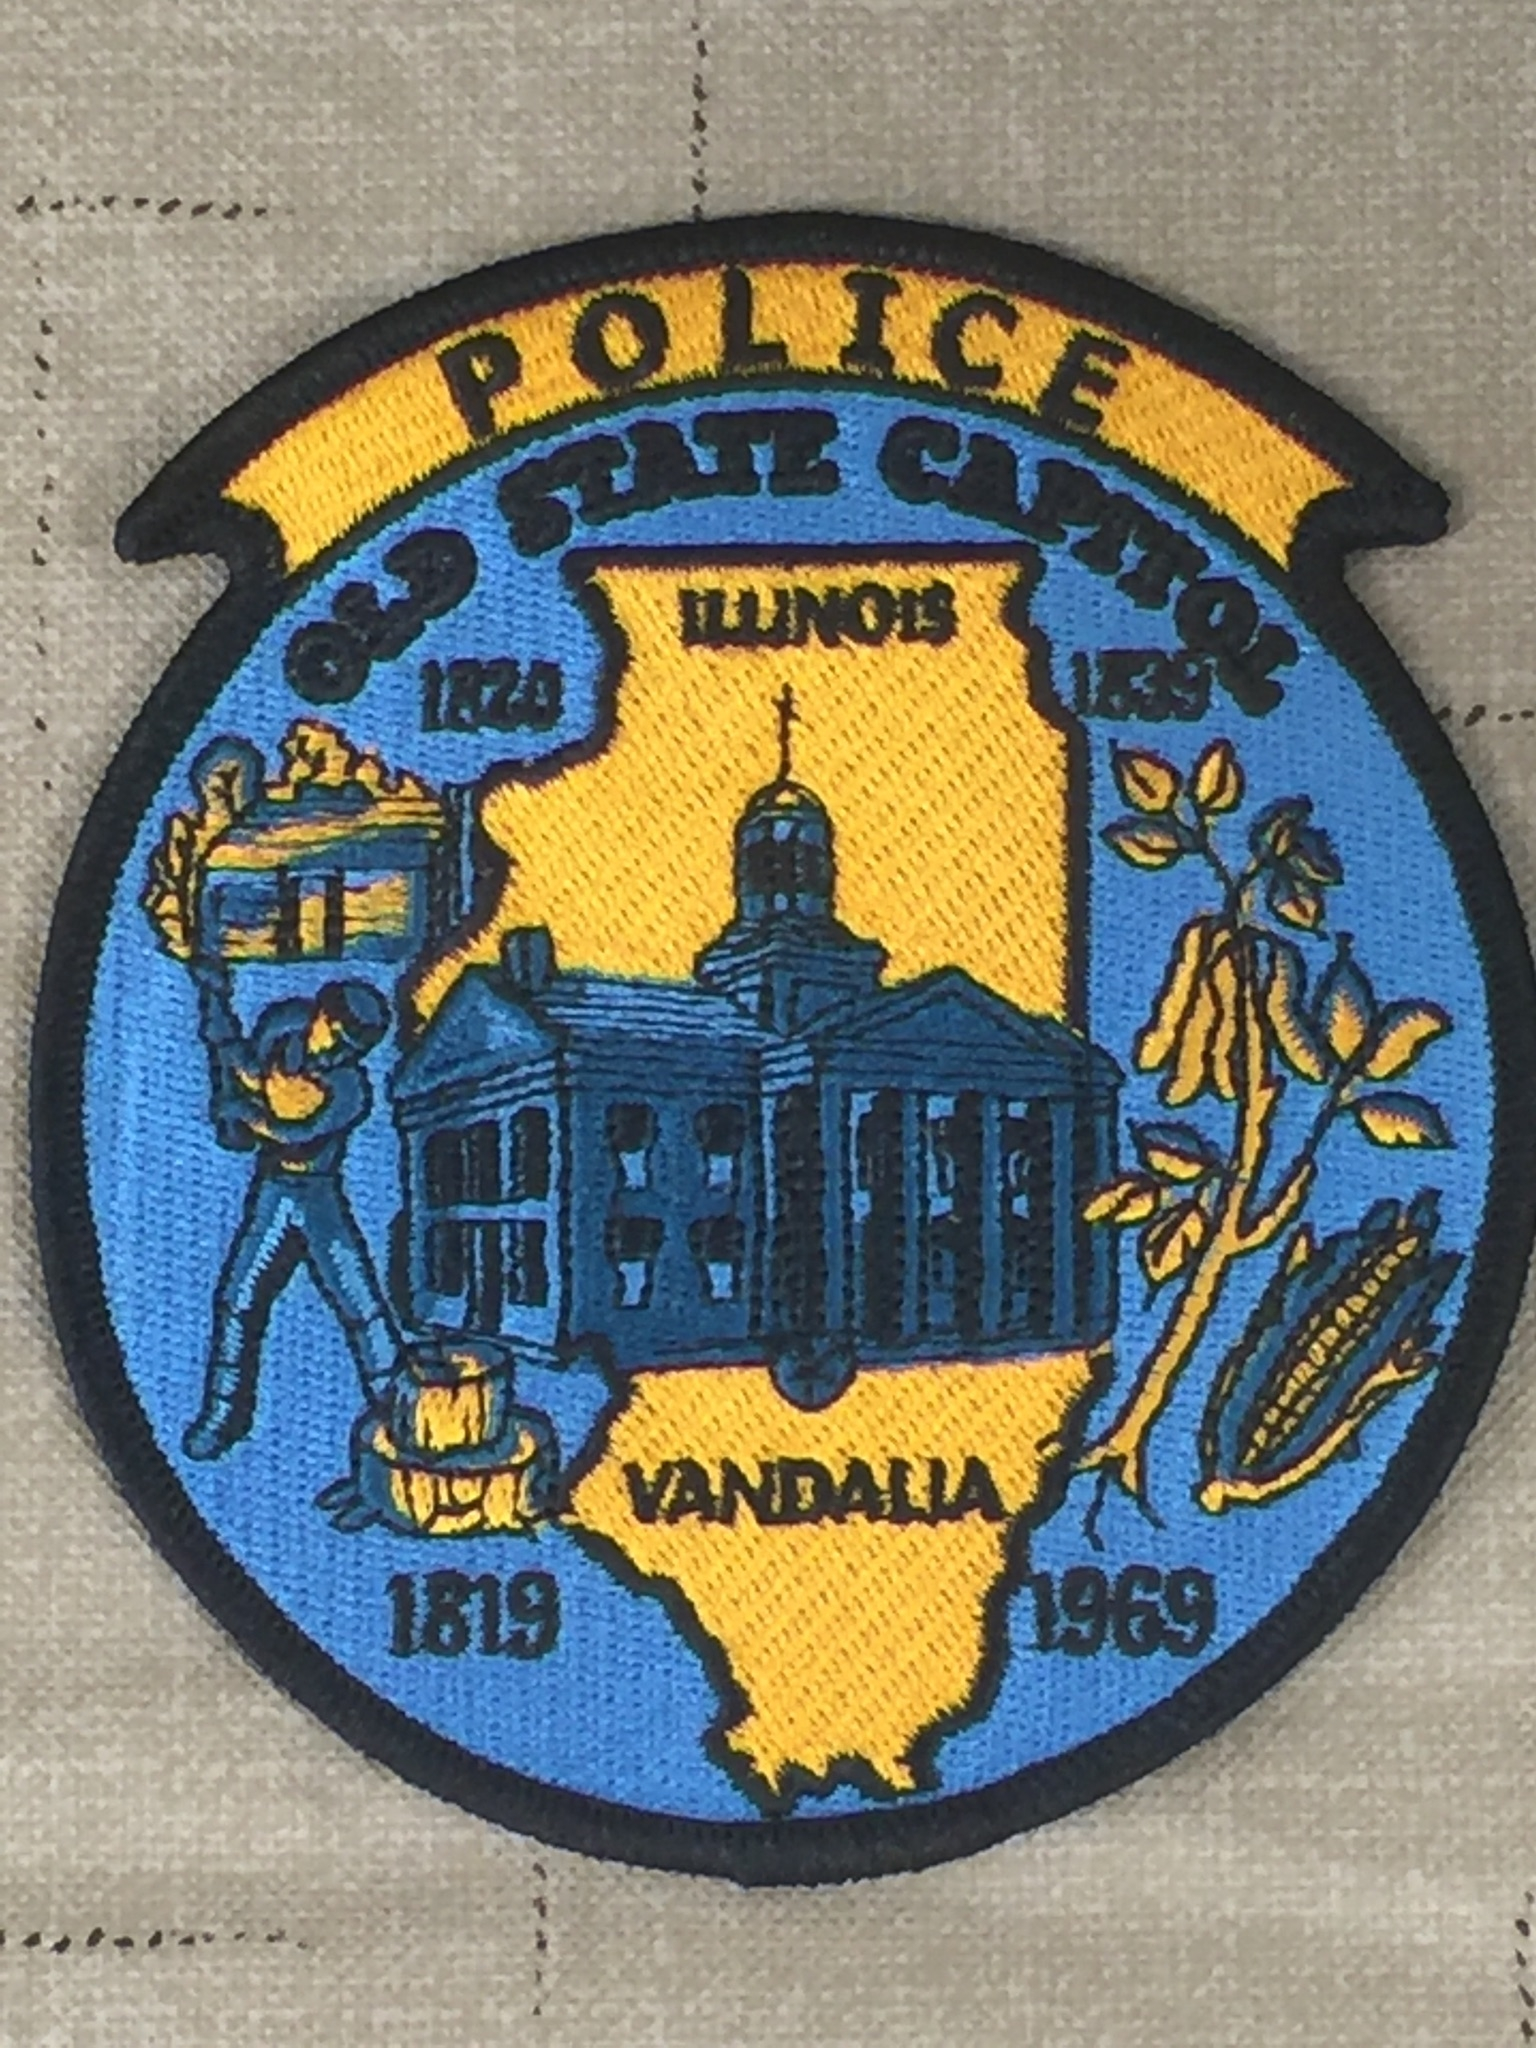 Vandalia PD arrest woman following alleged hit and run accident